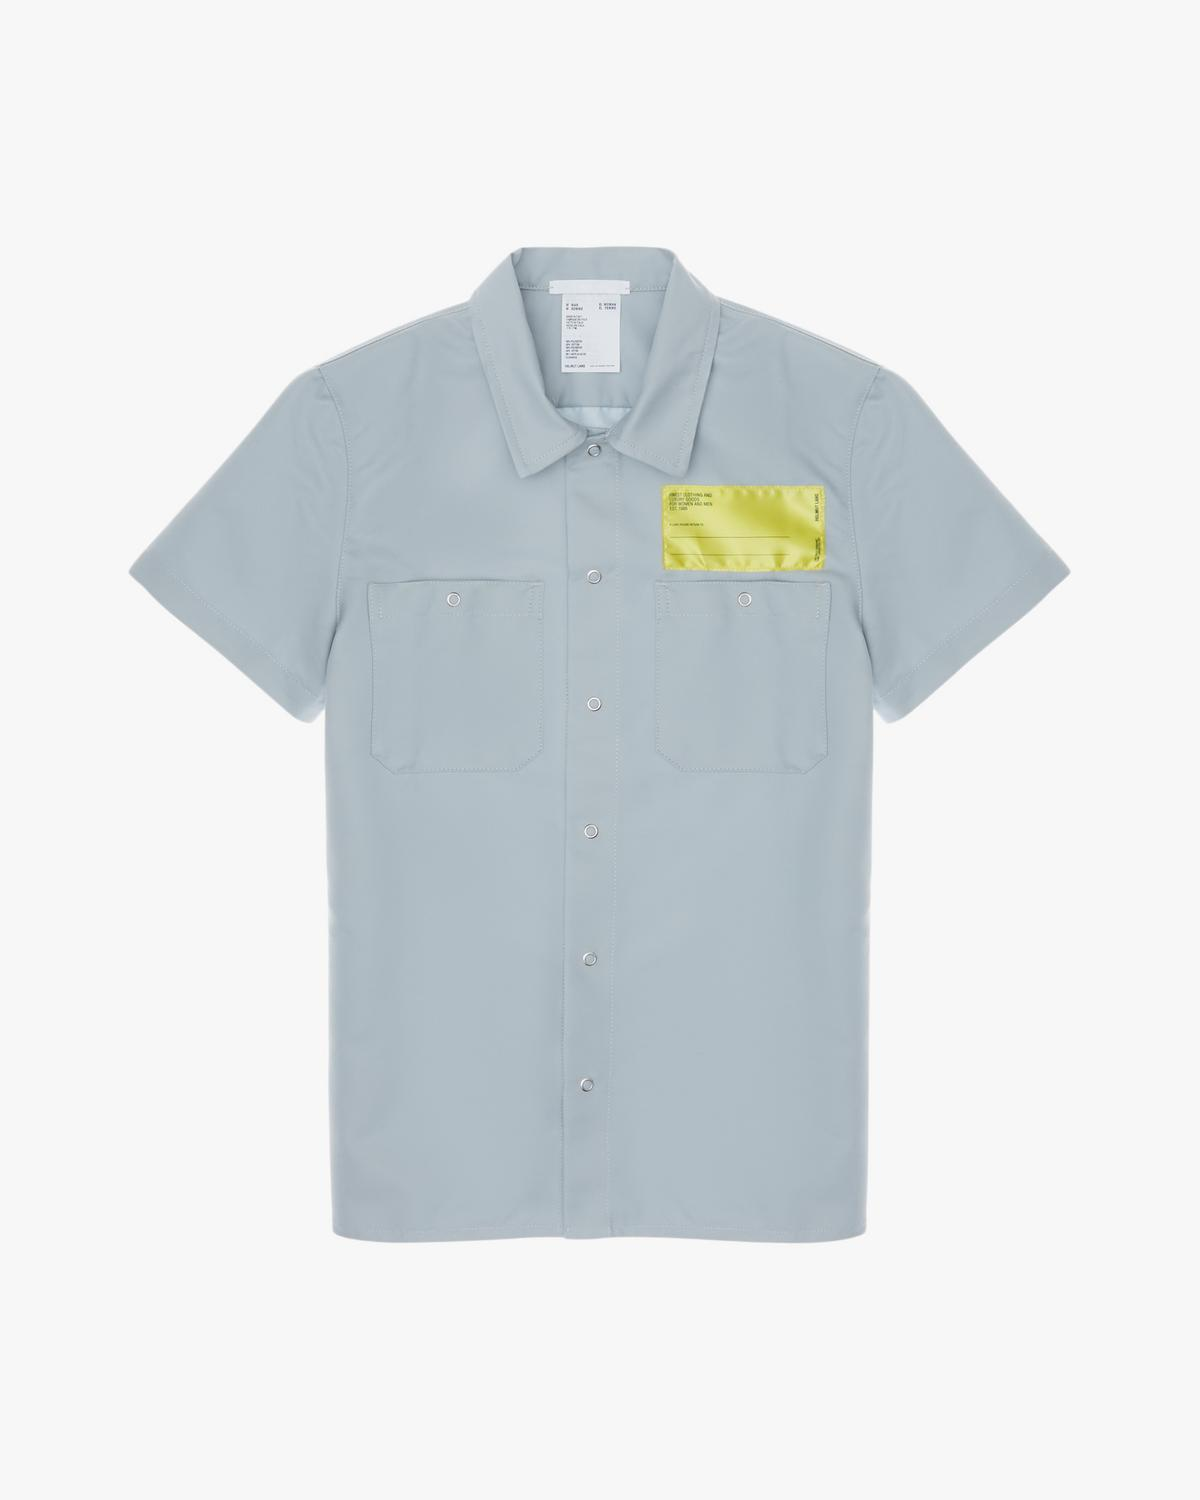 Industry Uniform Shirt